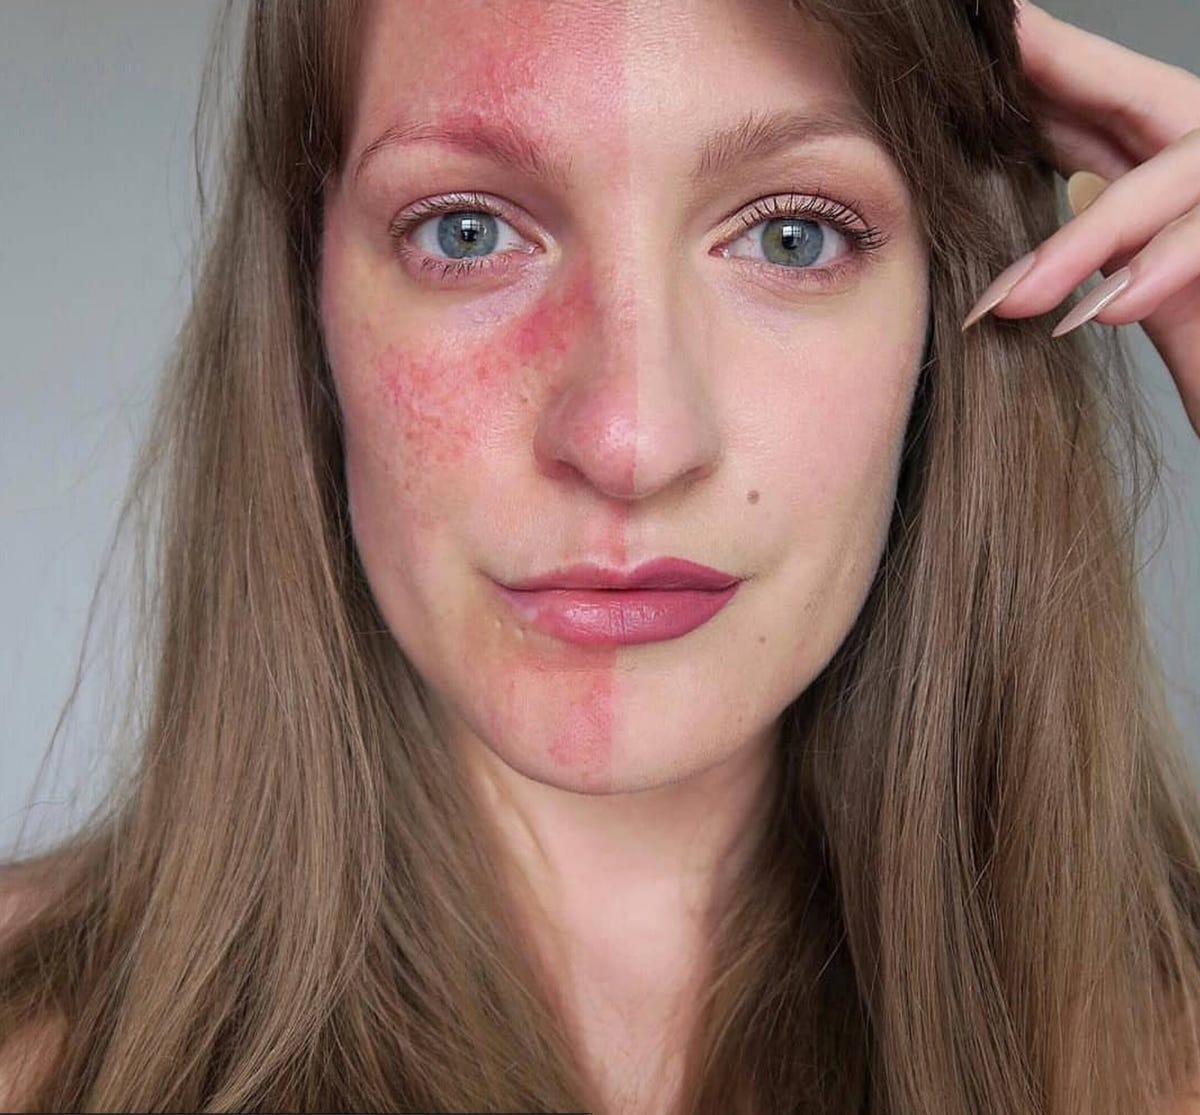 Best Rosacea Skincare Routine Products: Cleanser, Cream